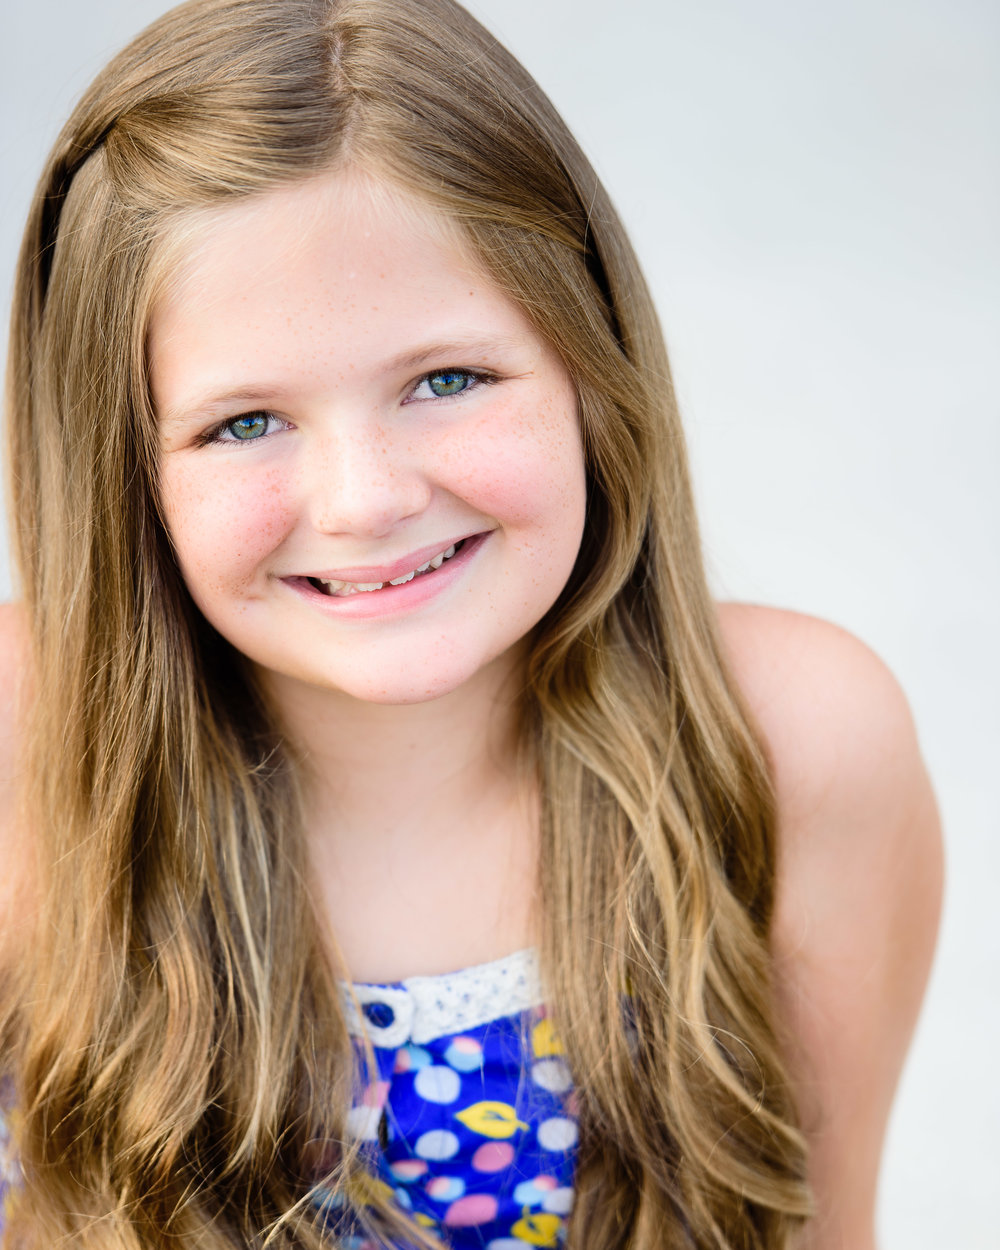 ChildrenHeadshots040.jpg